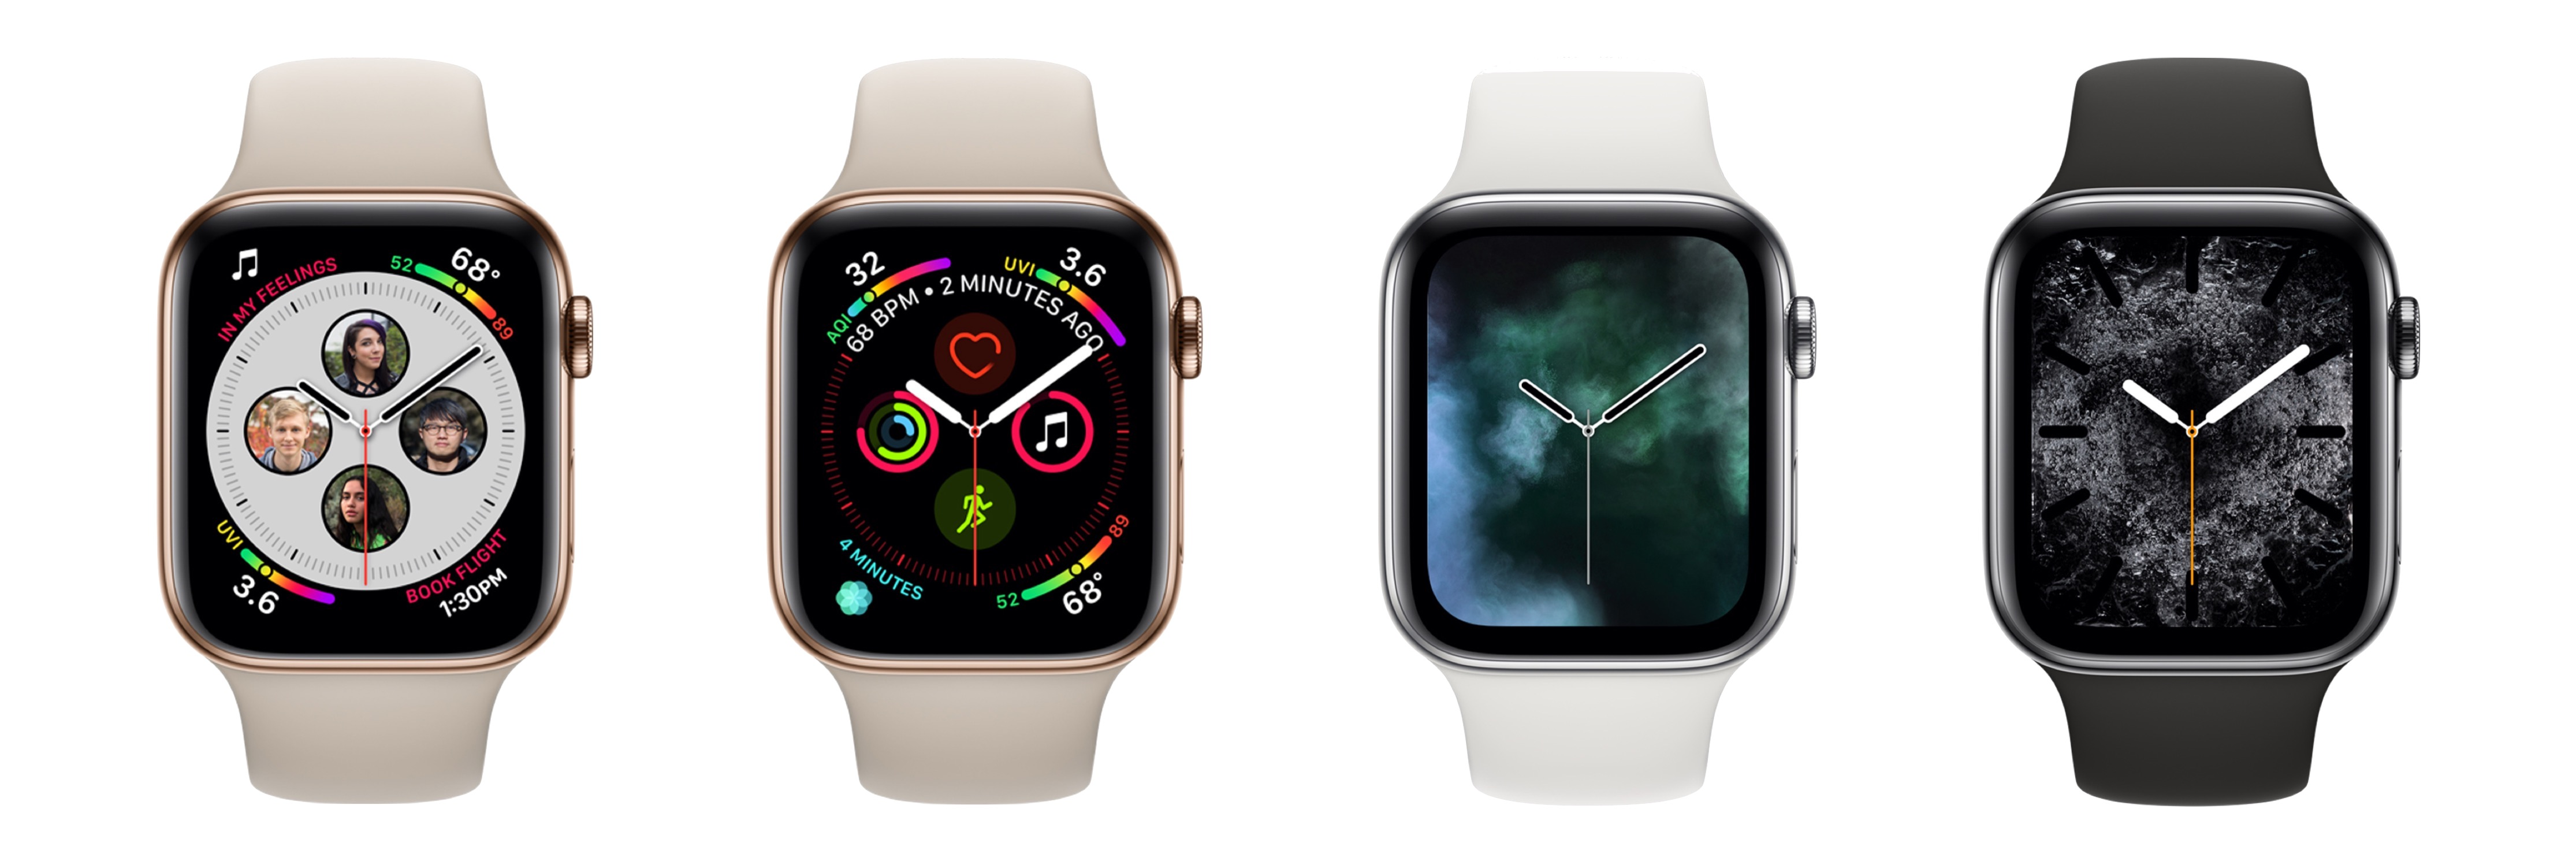 Apple-Watch-Series-4-faces